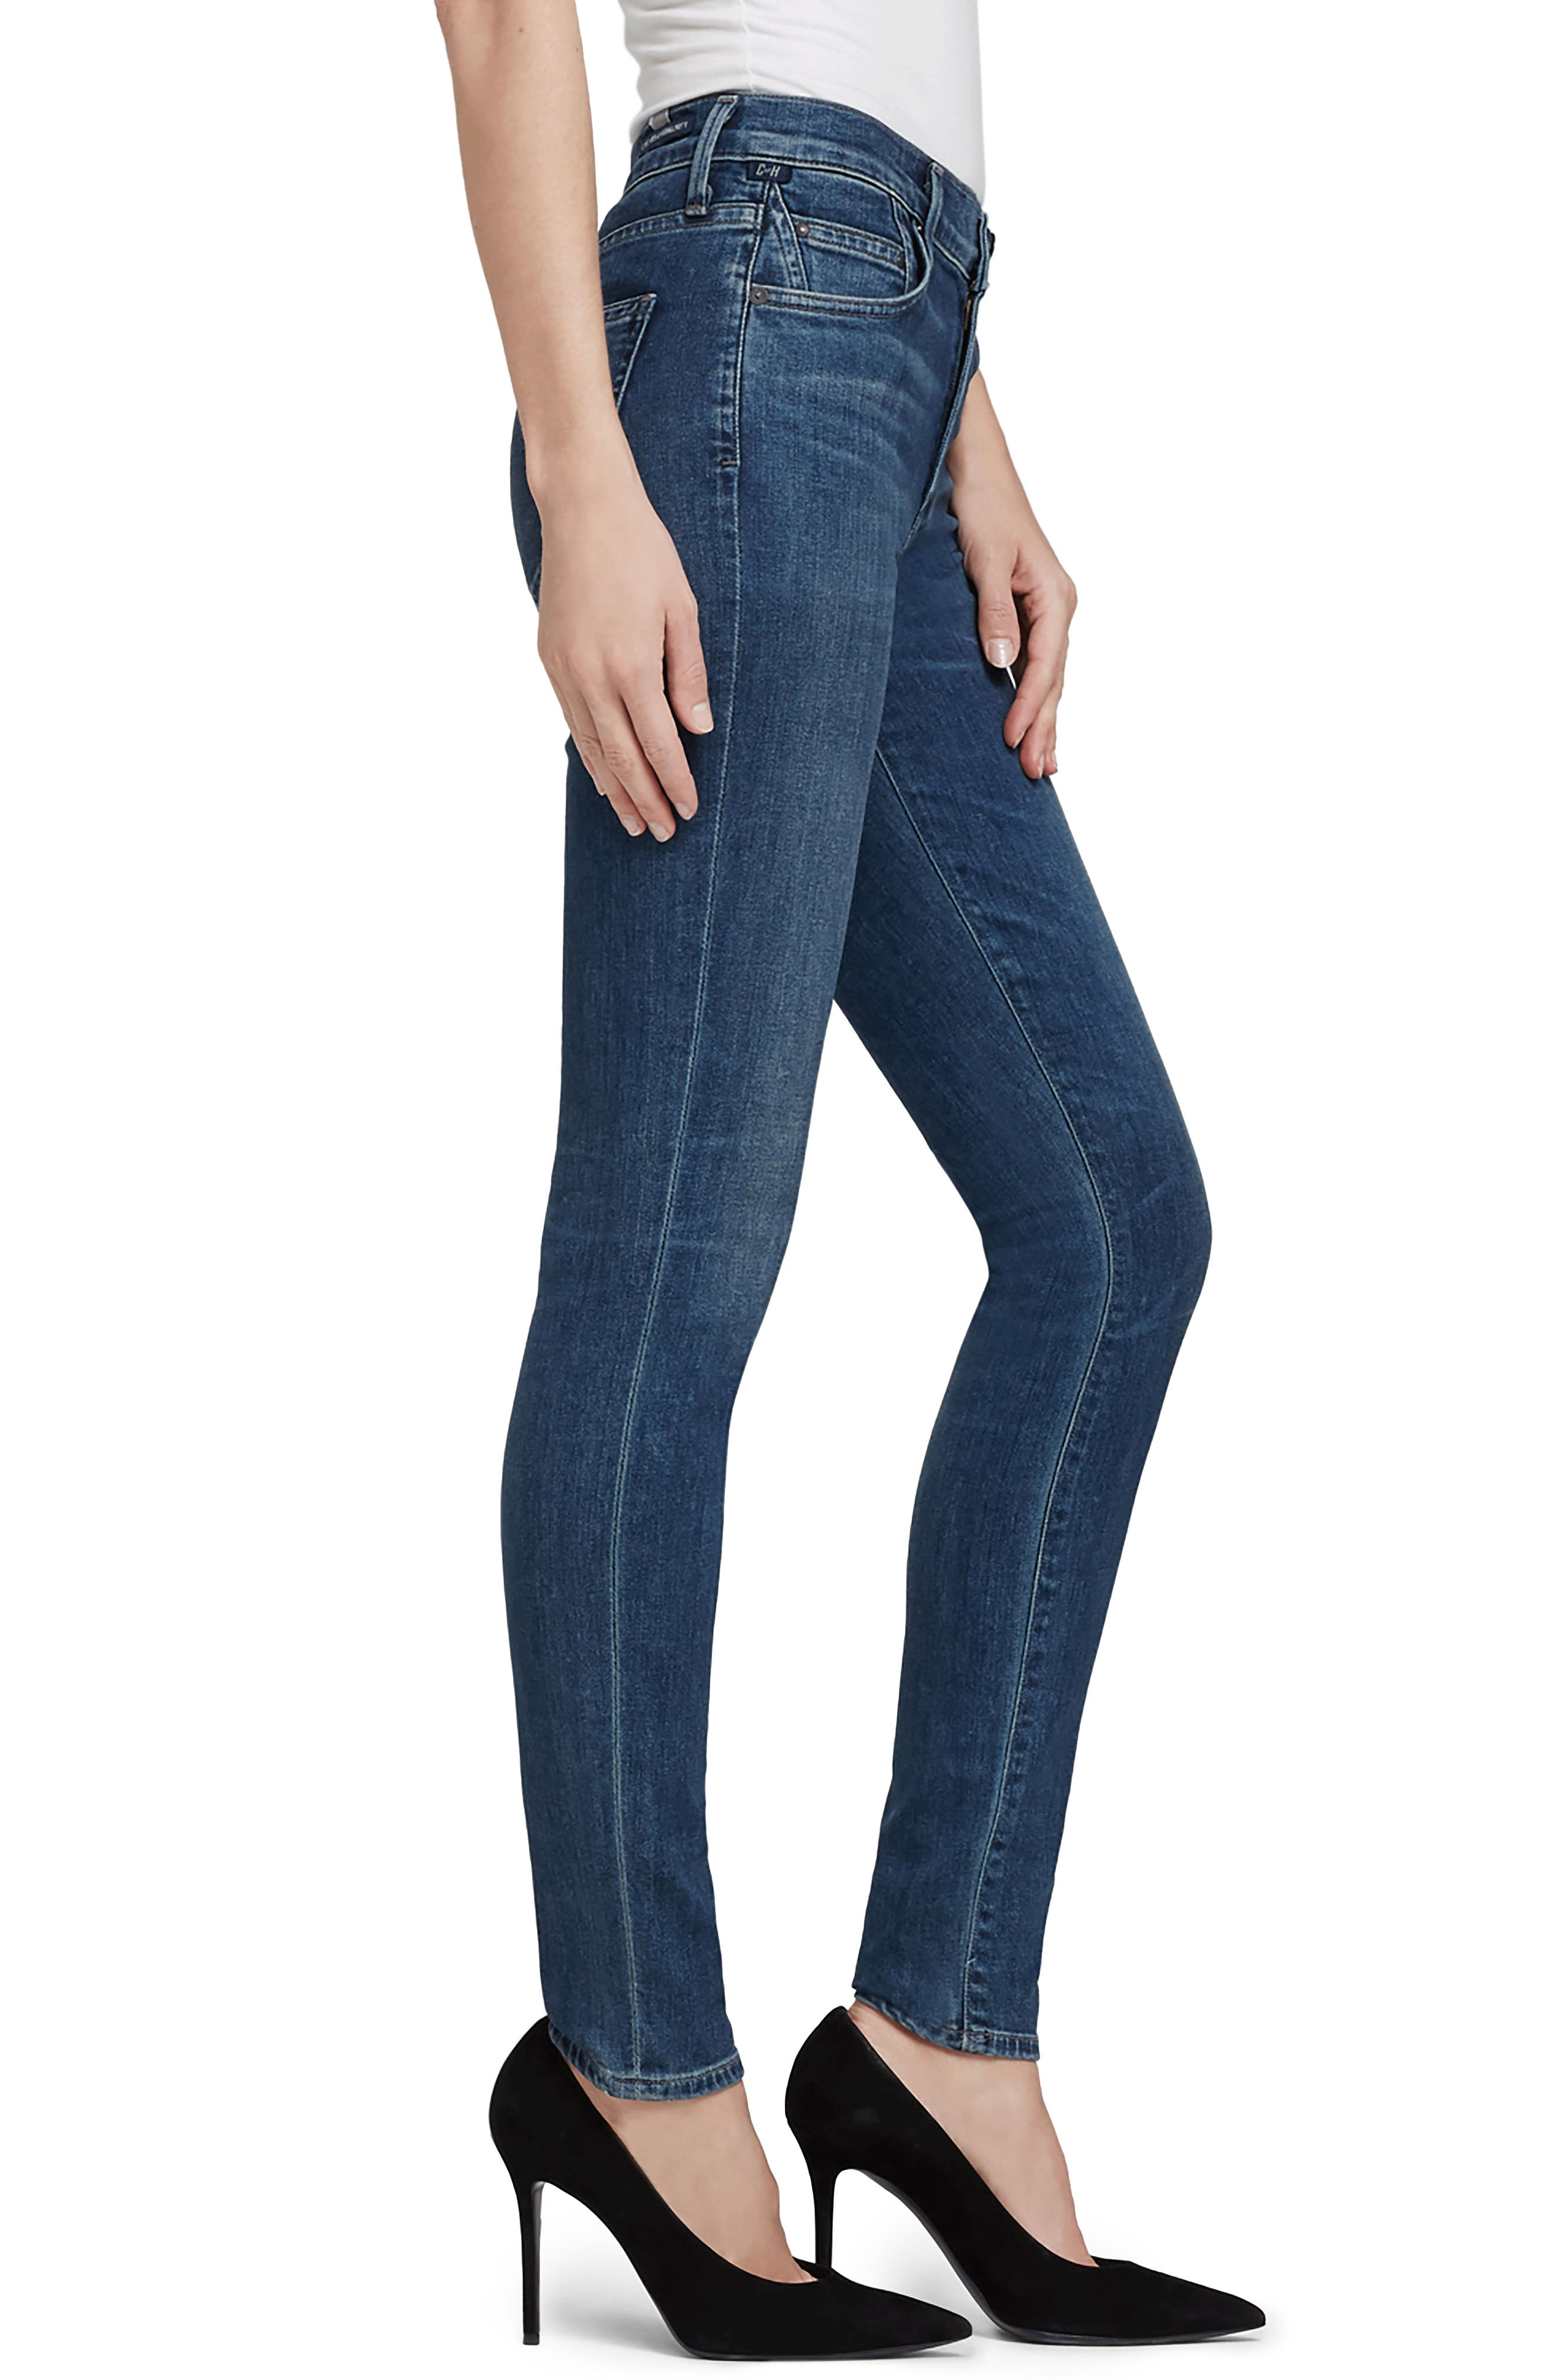 CITIZENS OF HUMANITY,                             Rocket High Waist Skinny Jeans,                             Alternate thumbnail 3, color,                             430